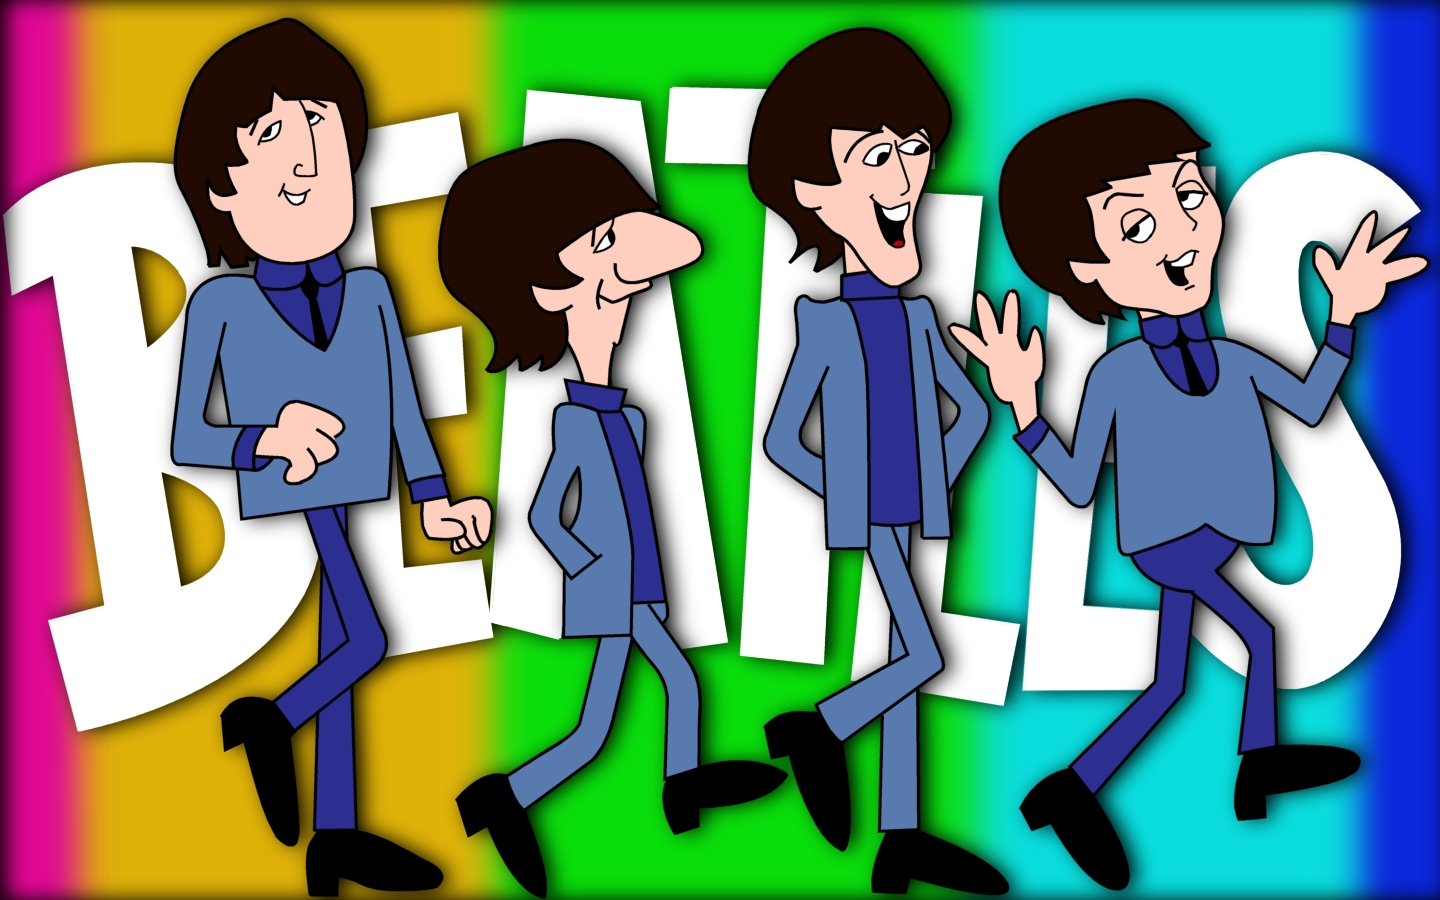 http://www.startrekanimated.com/ys_car_beatles_wall06.jpg